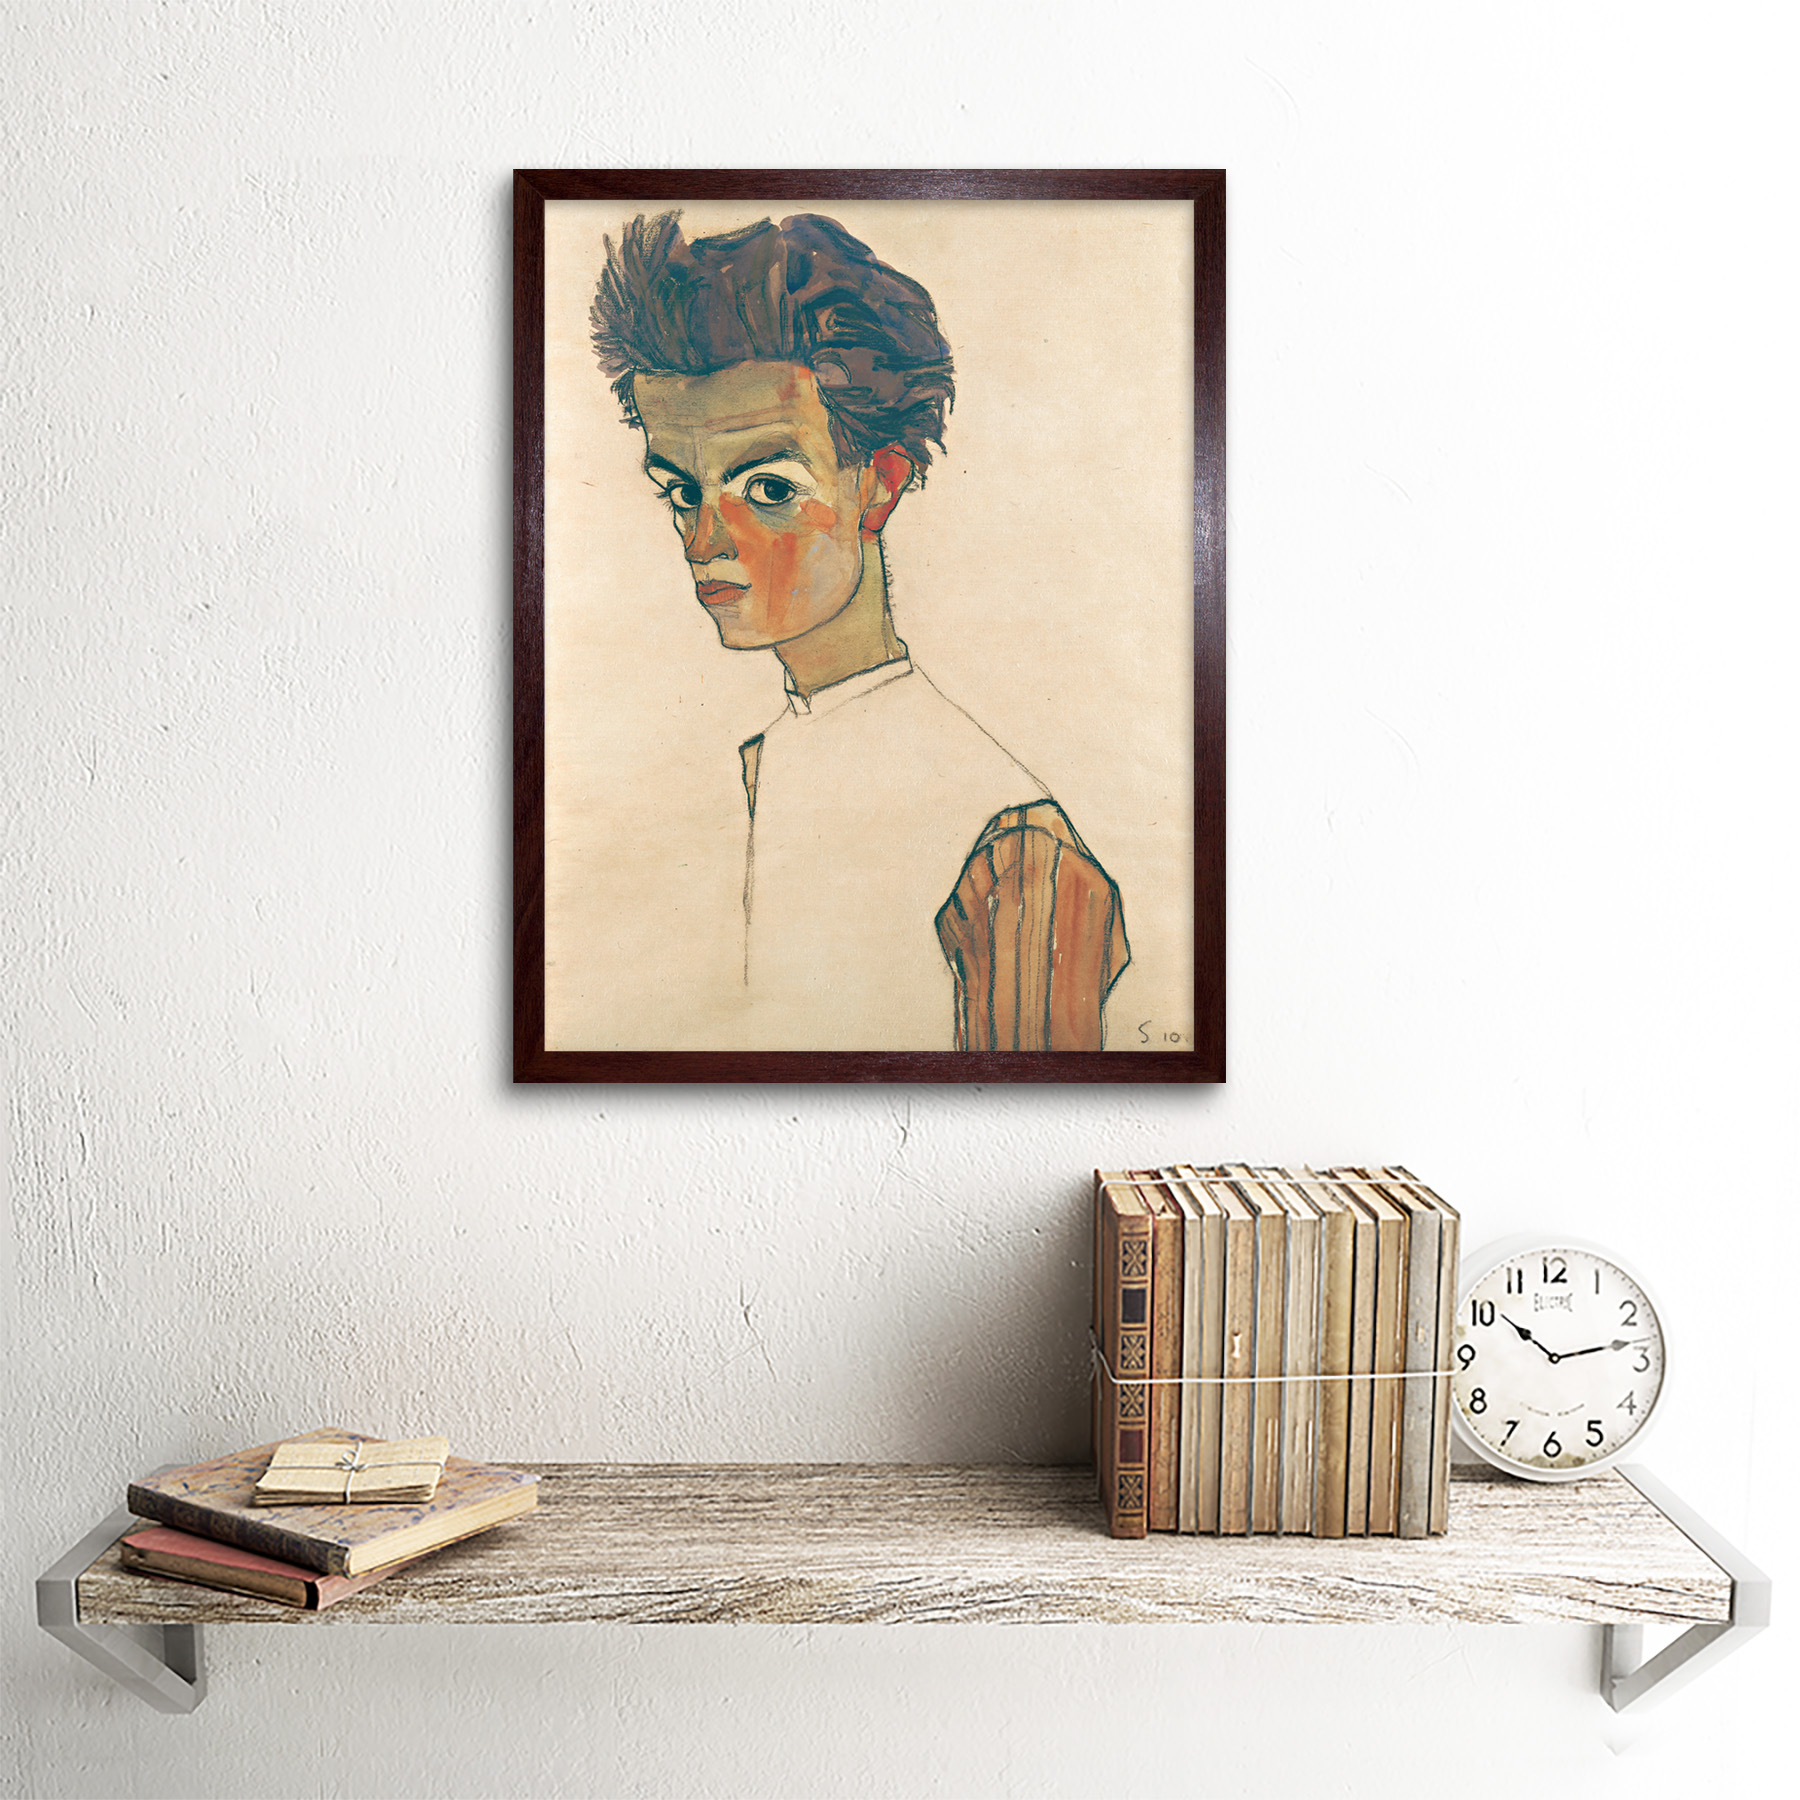 thumbnail 8 - Egon-Schiele-Self-Portrait-With-Striped-Shirt-Art-Print-Framed-12x16